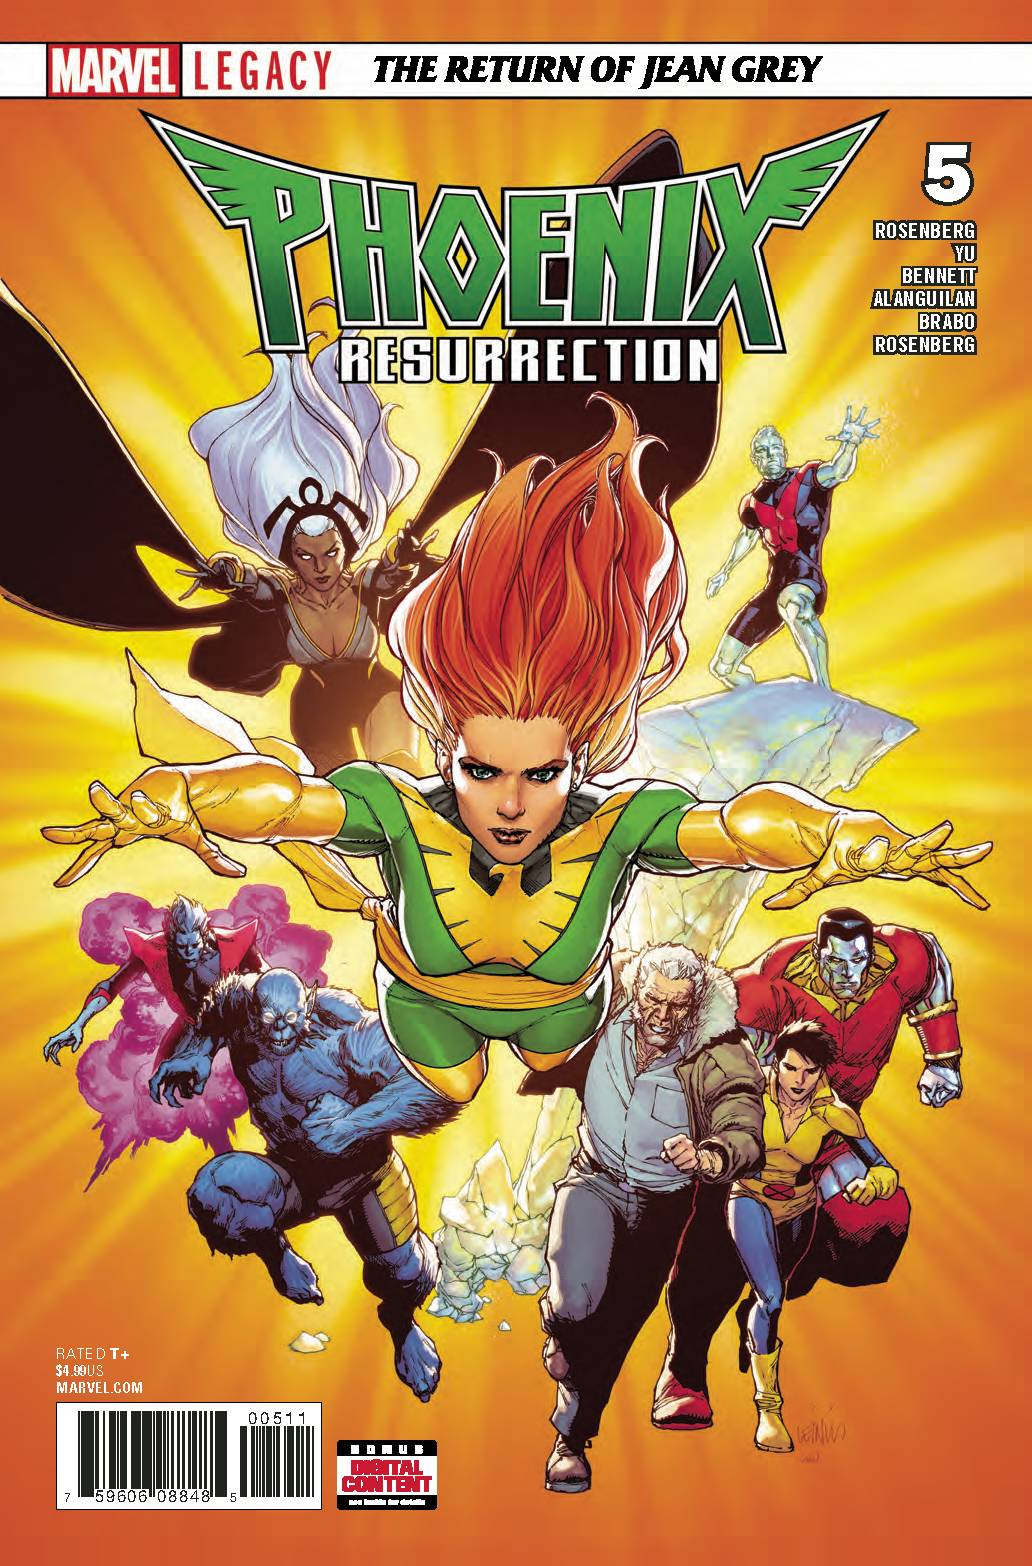 PHOENIX RESURRECTION RETURN JEAN GREY  (MS 5)